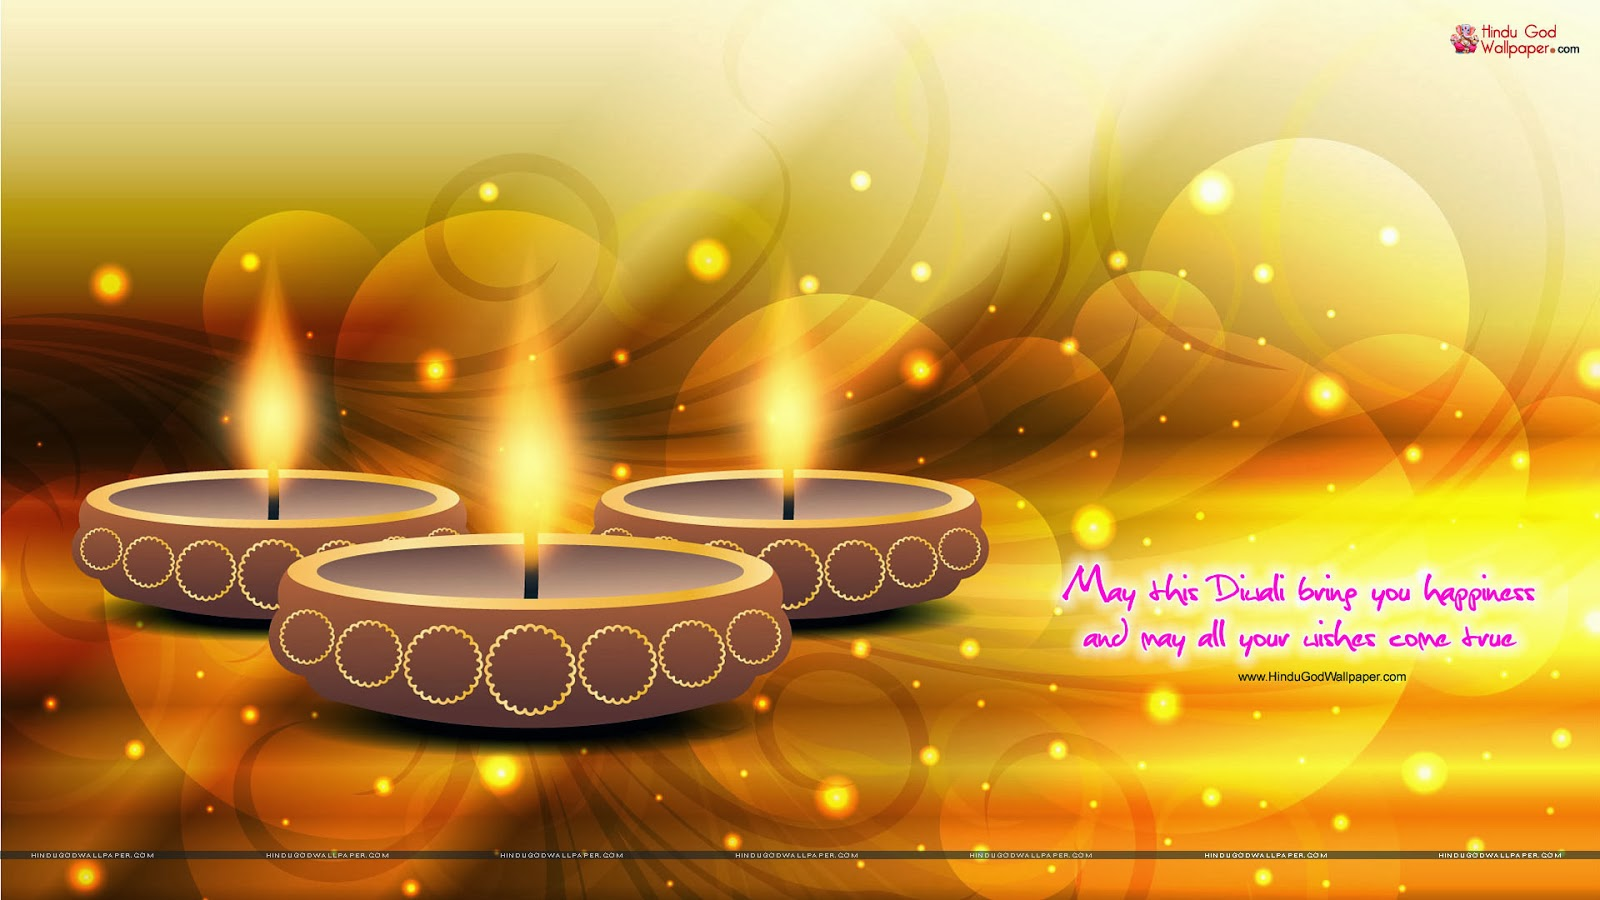 High Definition Diwali Wallpapers A Unique Wish: Hindu God Wallpapers Download